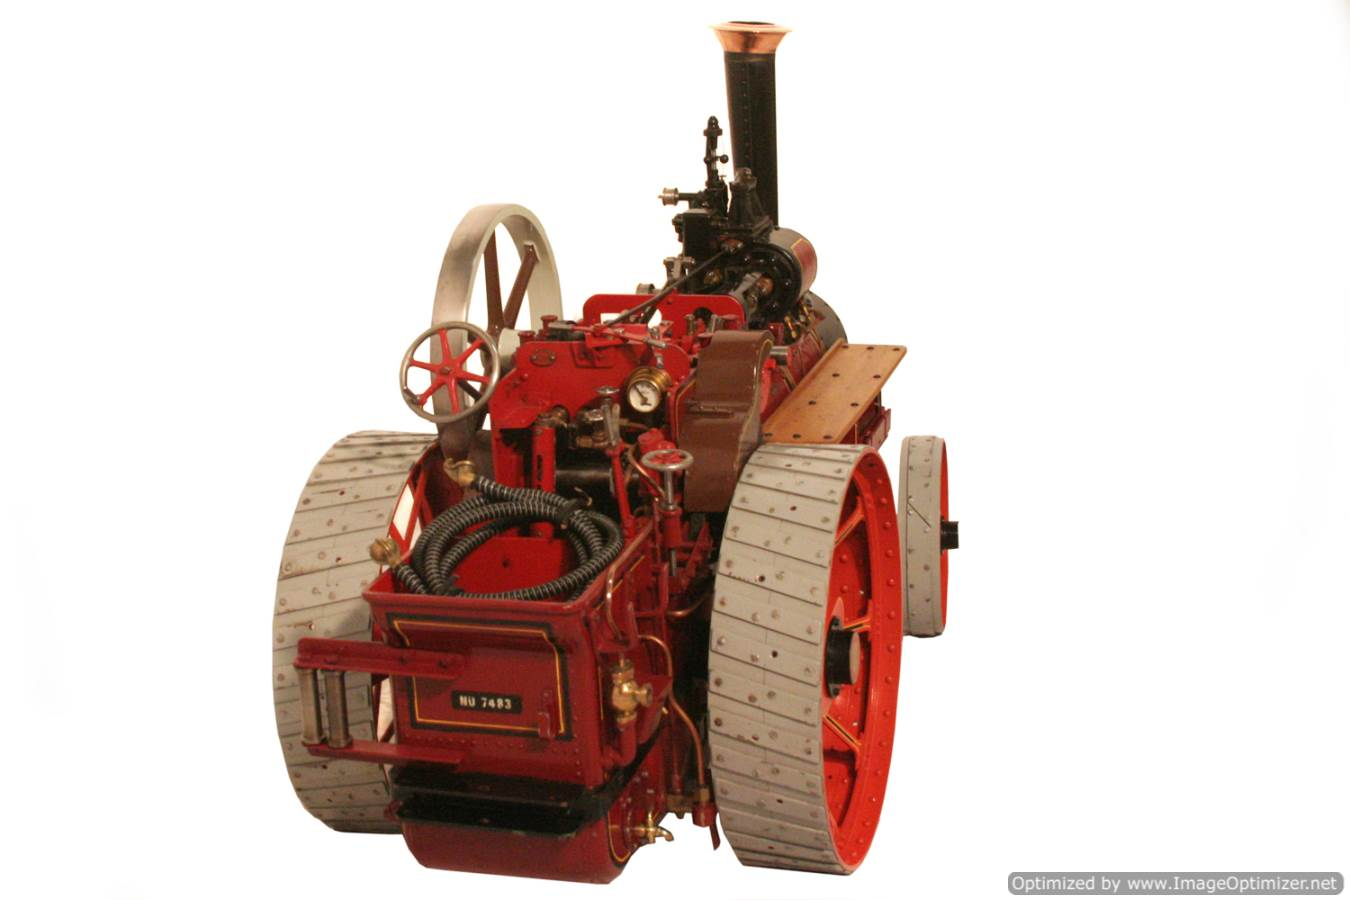 test Royal Chester Alchin Traction Engine for sale 08 Optimized